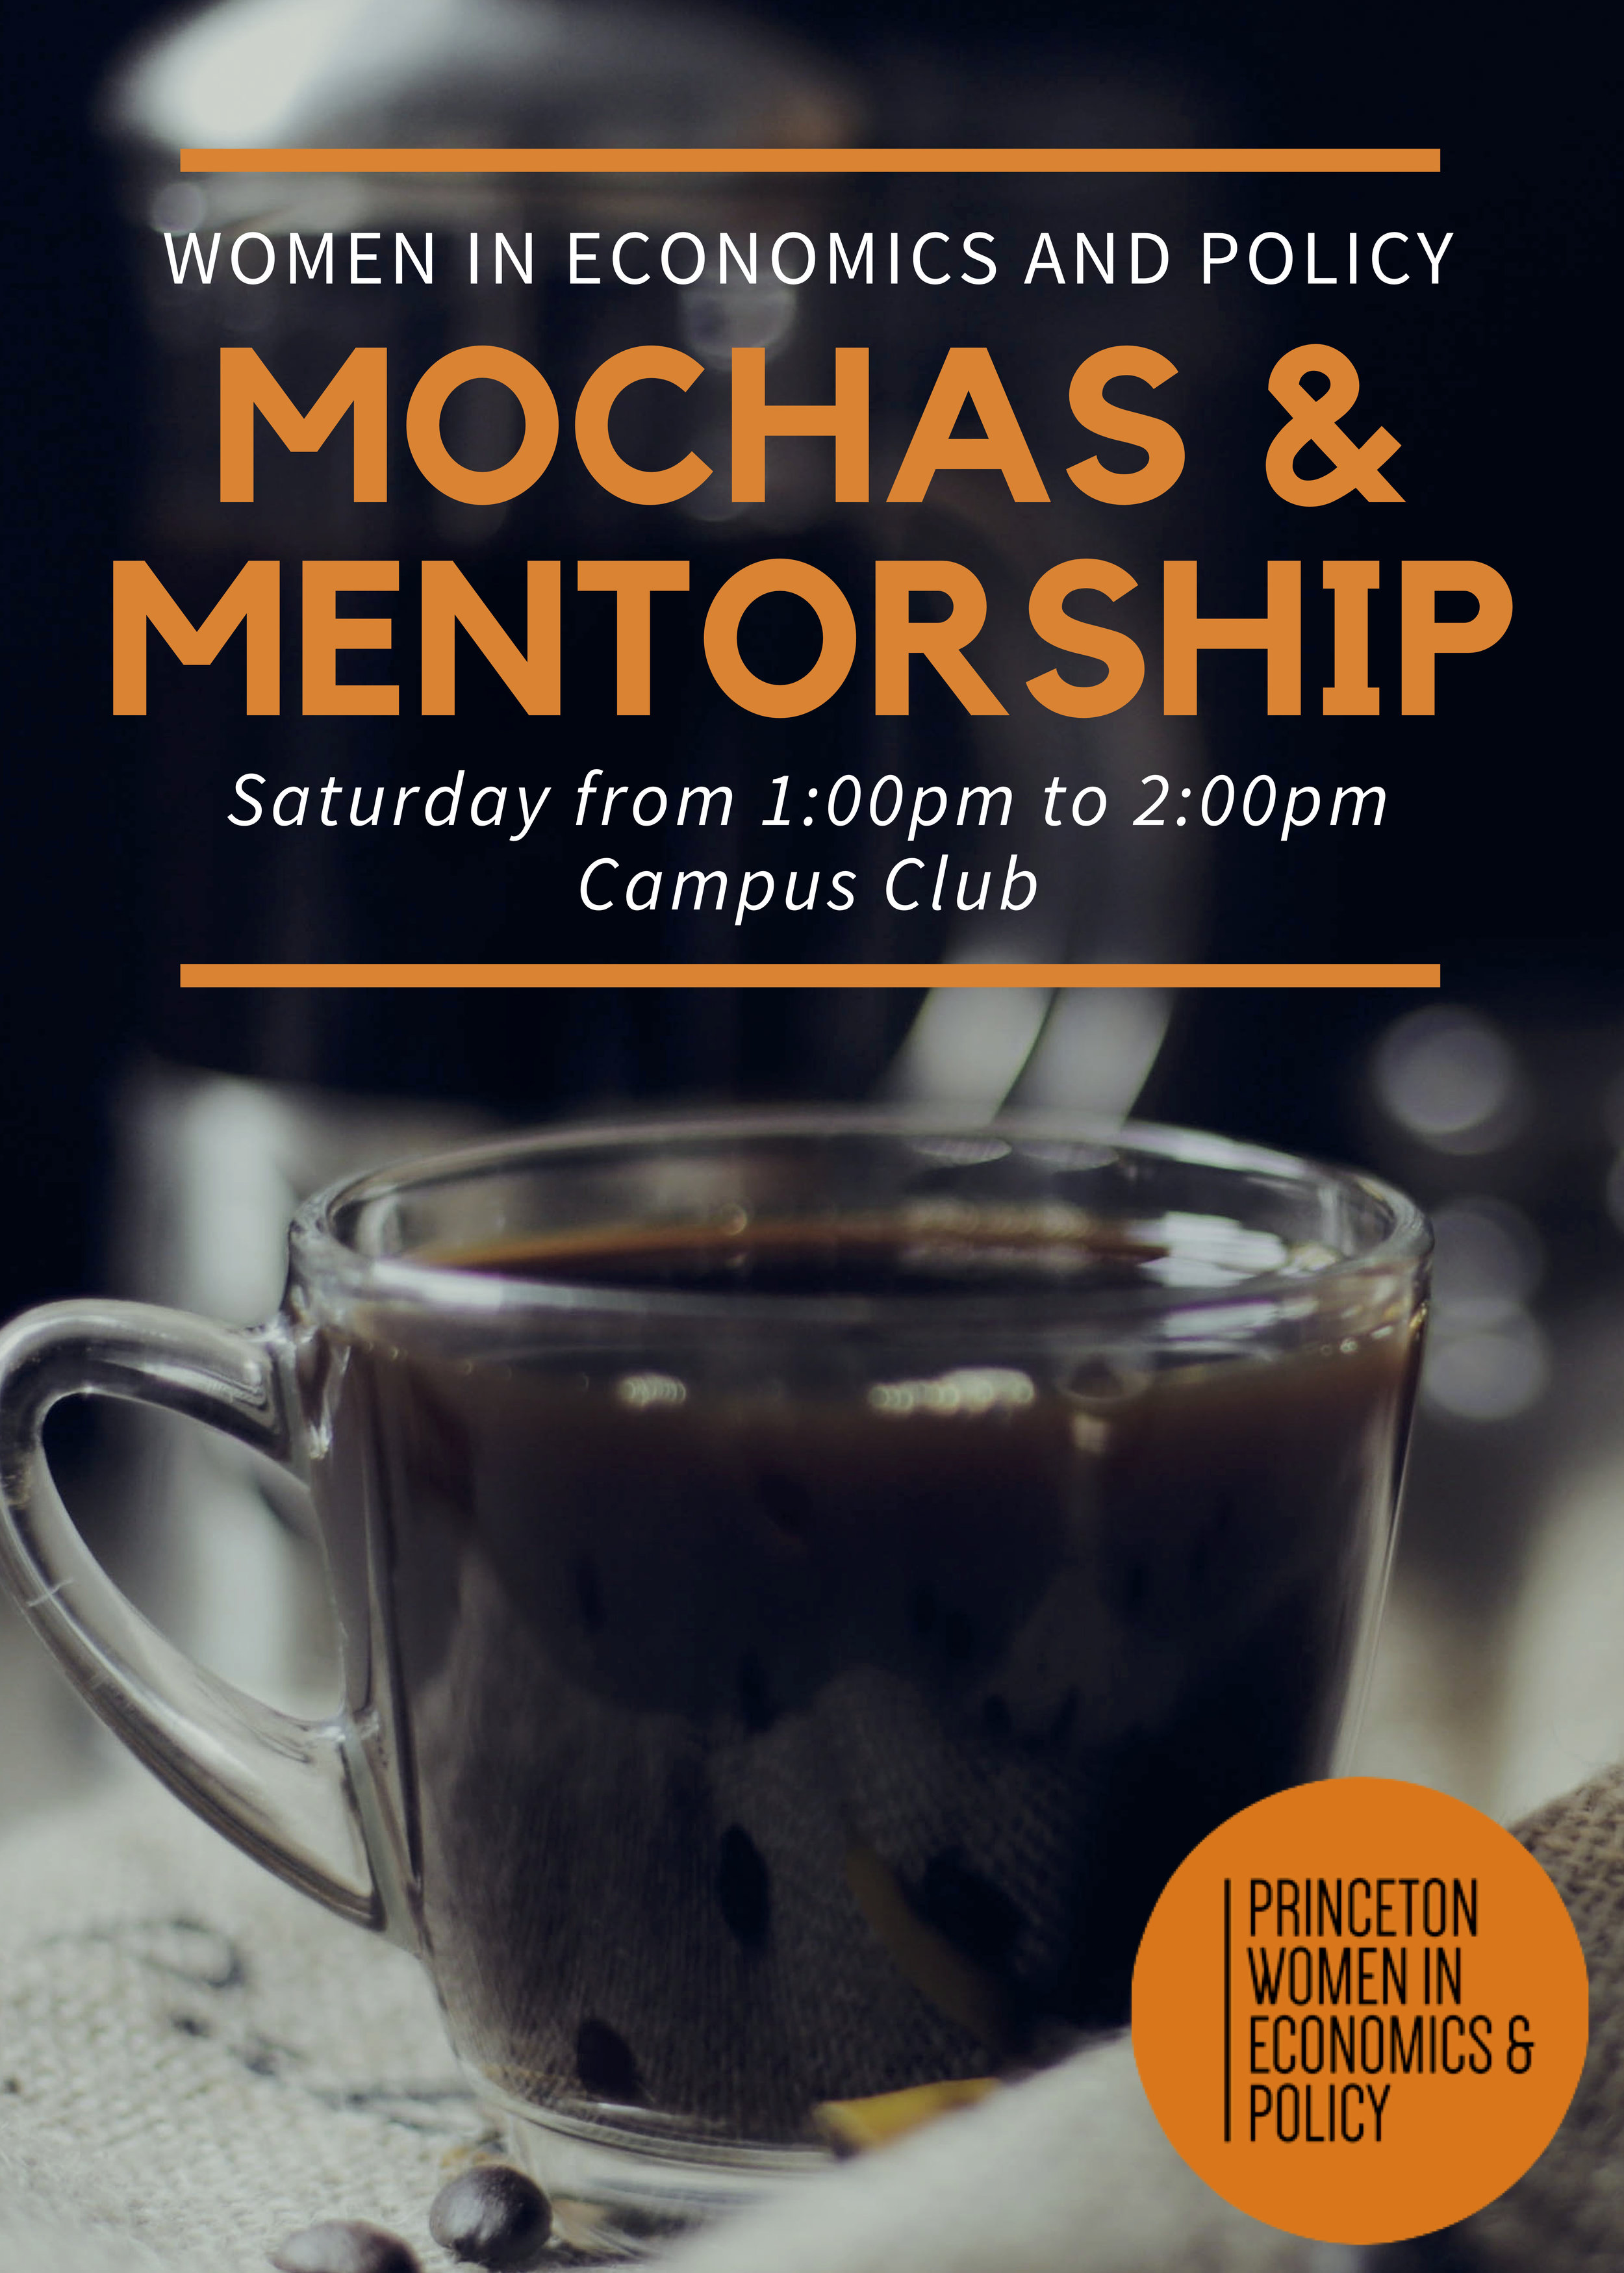 Mochas & Mentorship - We will be hosting a Mentorship Meet-Up this Saturday. We encourage all mentors and mentees to come to get to know one another and for mentees to ask questions they may have about course selection or internships to a wider range of mentors. Here are the event details:Saturday December 1st, 1:00-2:00pm, Campus ClubAlso, please fill out the following google form about feedback on the mentorship program or if you would like to be a mentor to any additional mentees. We hope to see you on Saturday!